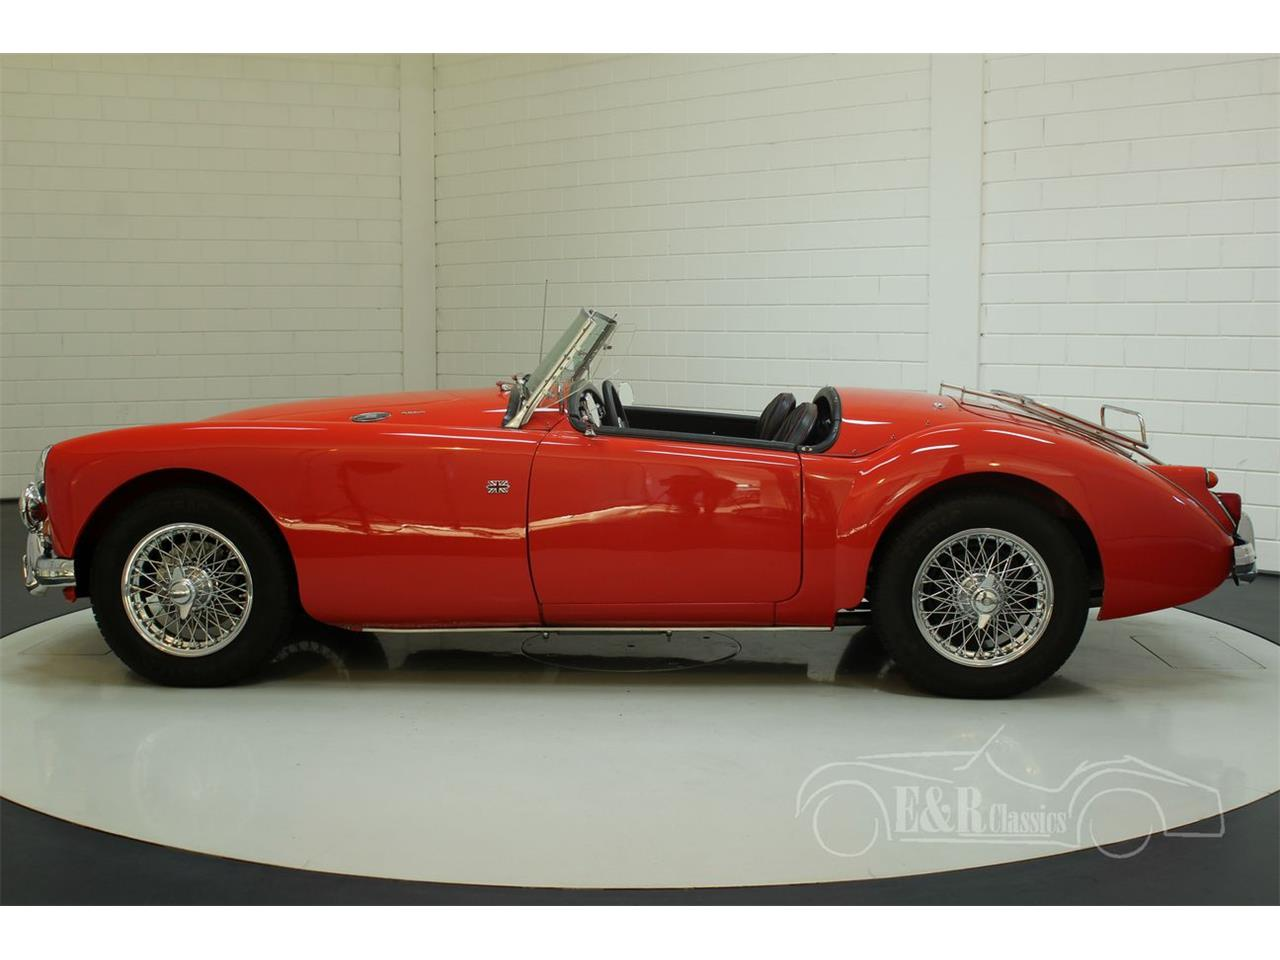 Large Picture of Classic 1962 MG MGA - $44,900.00 Offered by E & R Classics - Q2W8